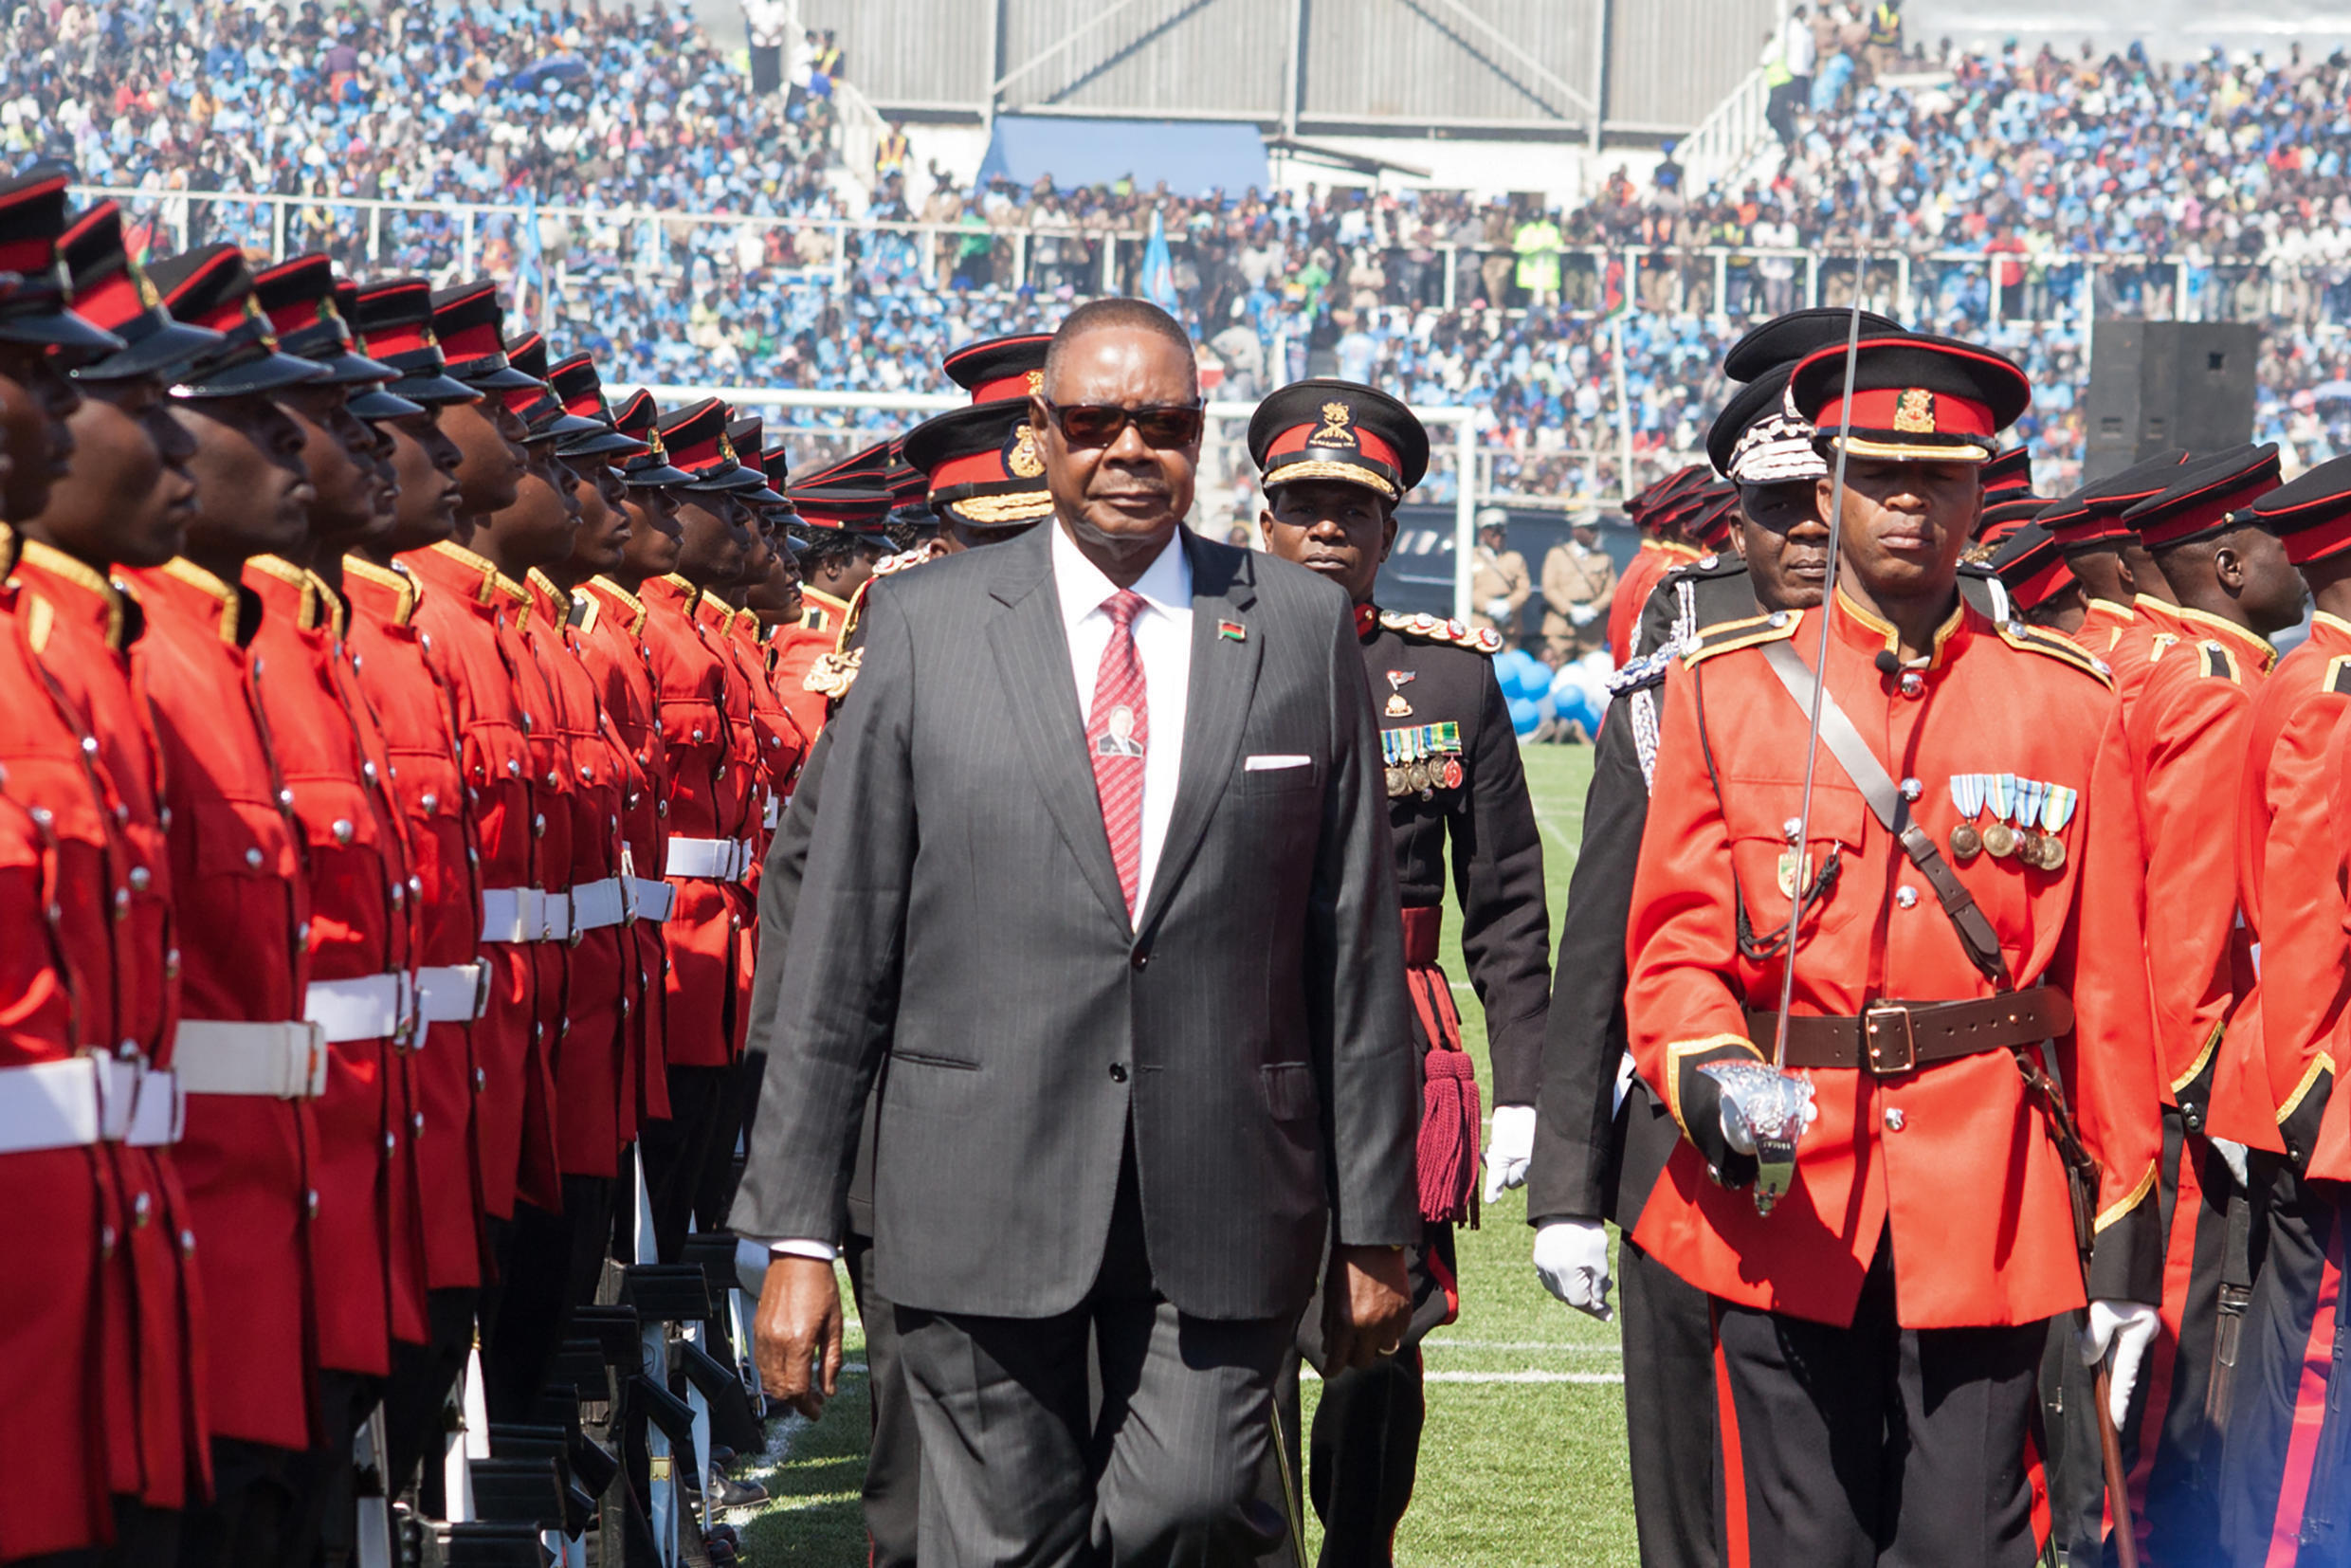 Current Malawi President Peter Mutharika in May 2019 at Kamuzu Stadium in Blantyre, where Malaians returning from South Africa were housed before they fled.